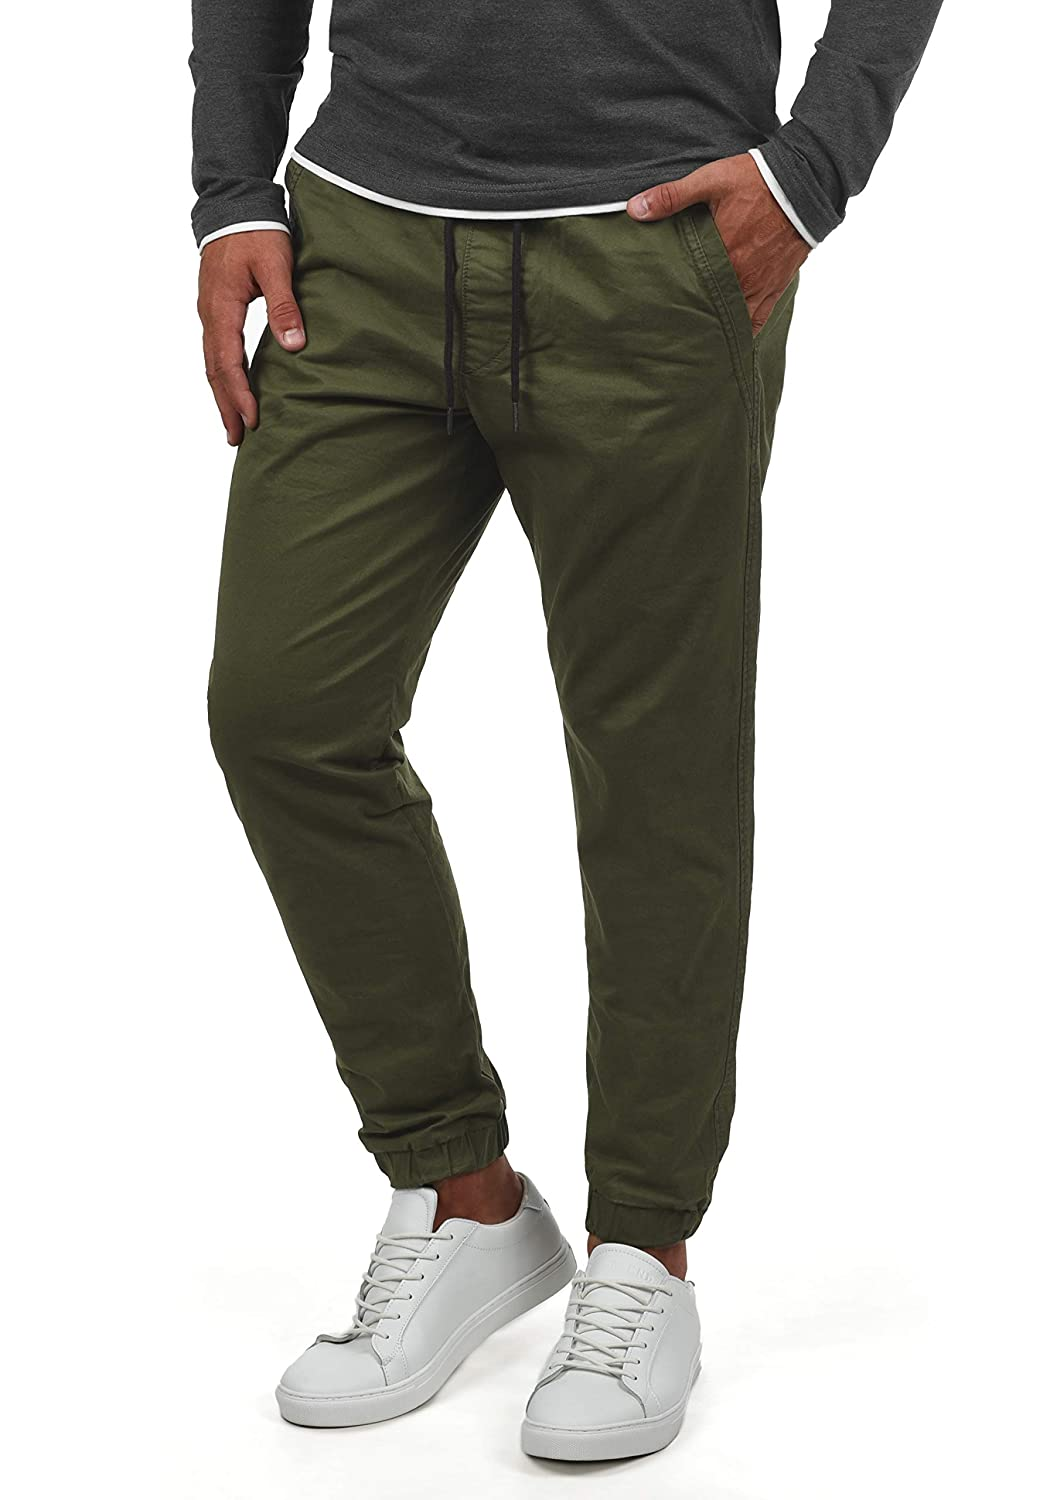 JACK & JONES Uctar - Pantalon Chino clásico